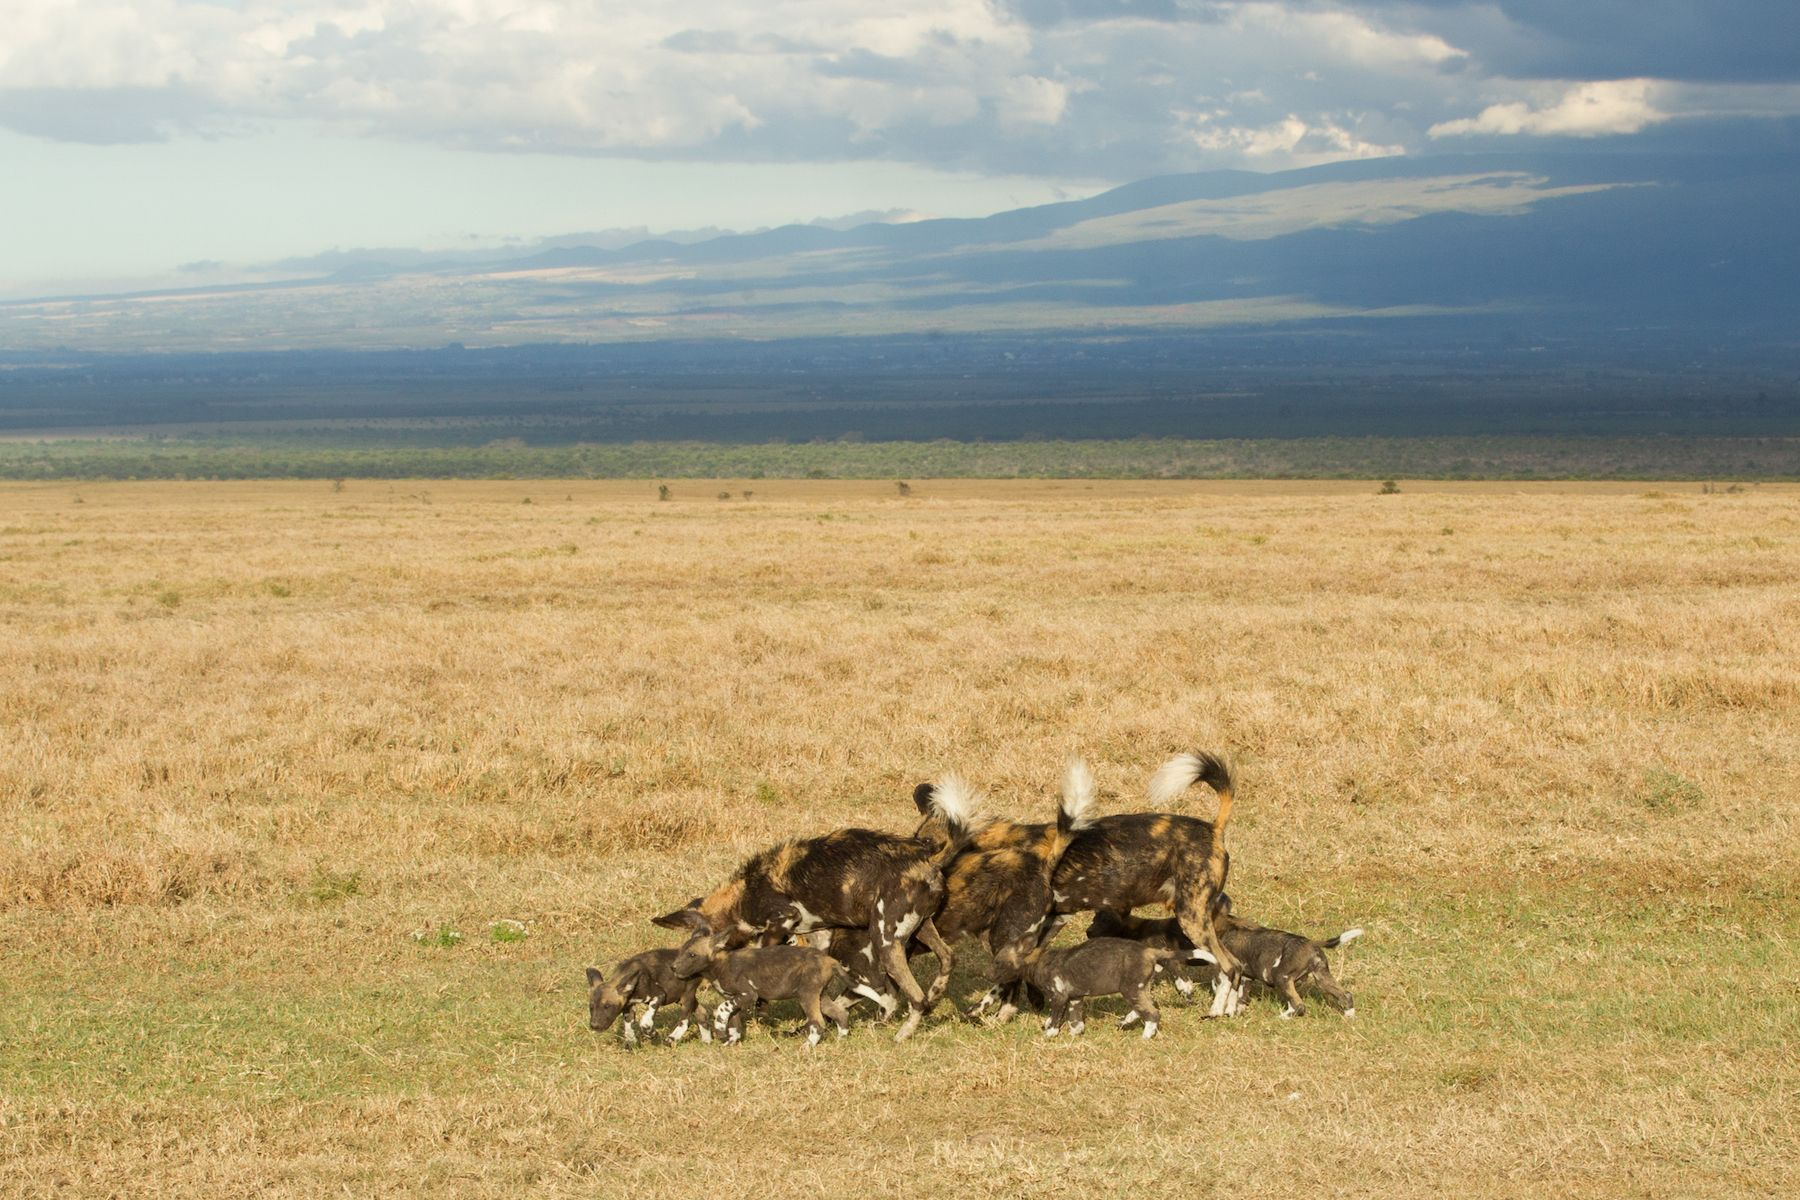 Kenya Photography Tours - Masai Mara - Wildlife Photography Holidays